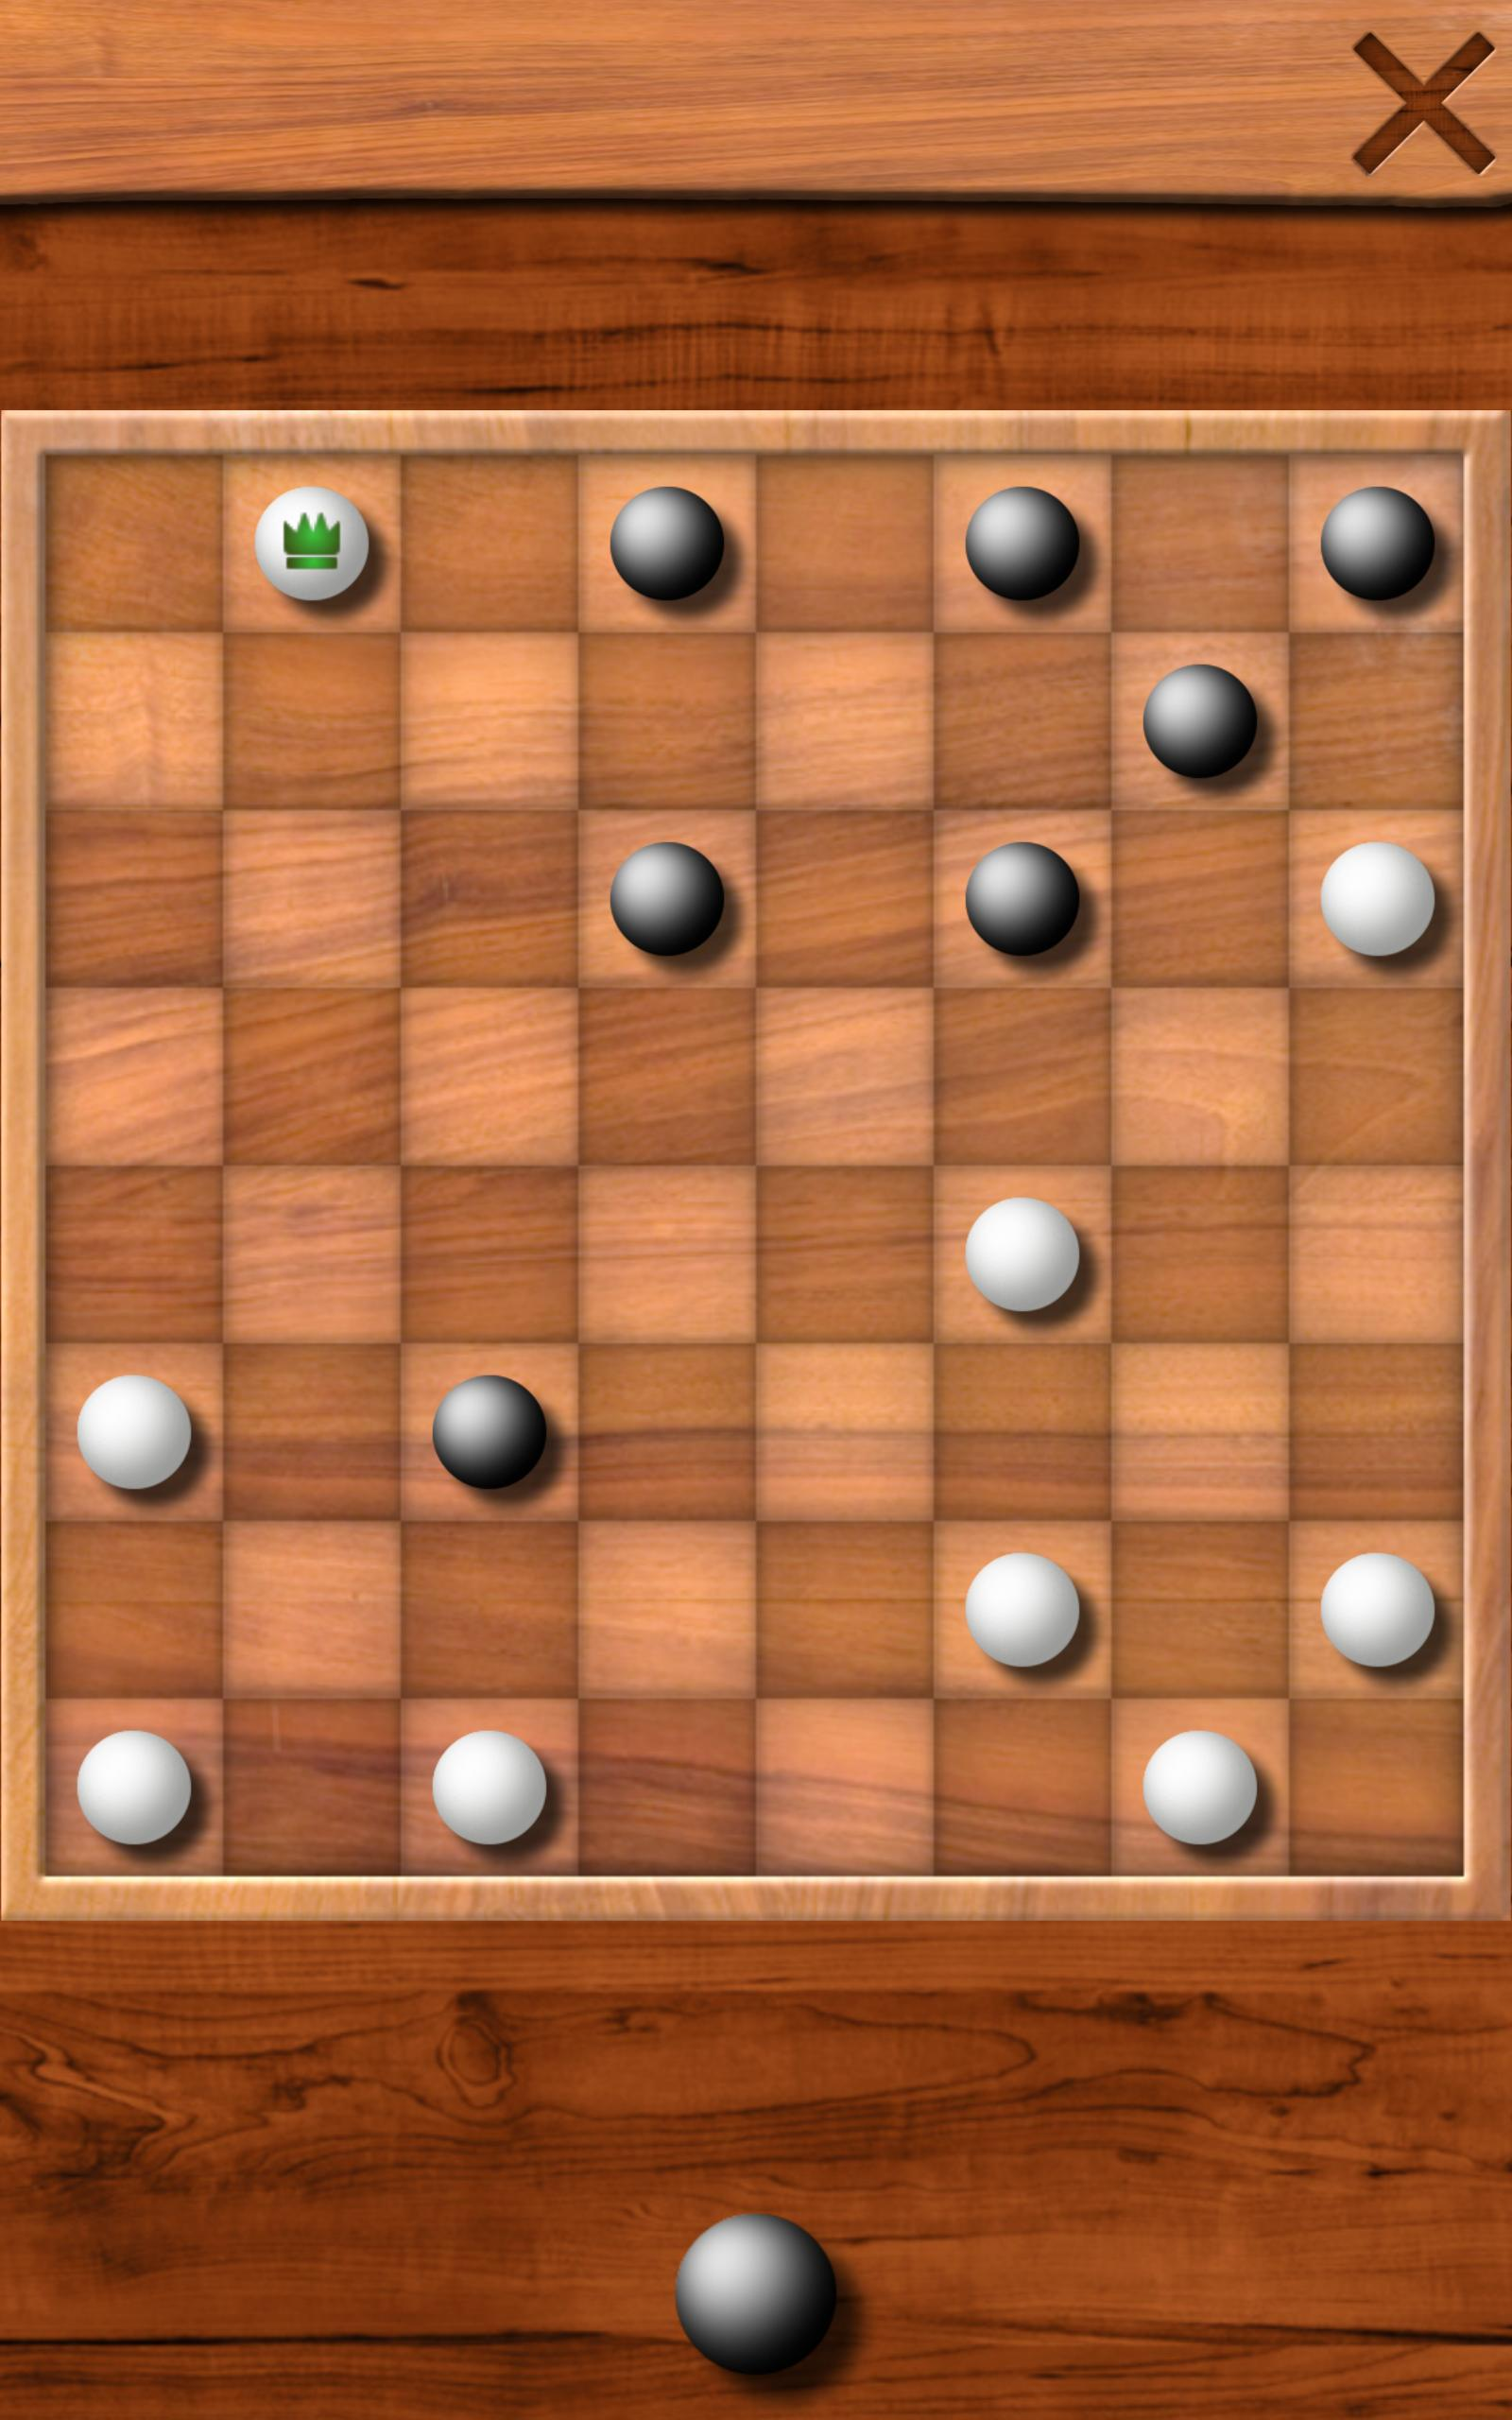 Free Classic 4 - The famous board games 2.1.6 Screenshot 6